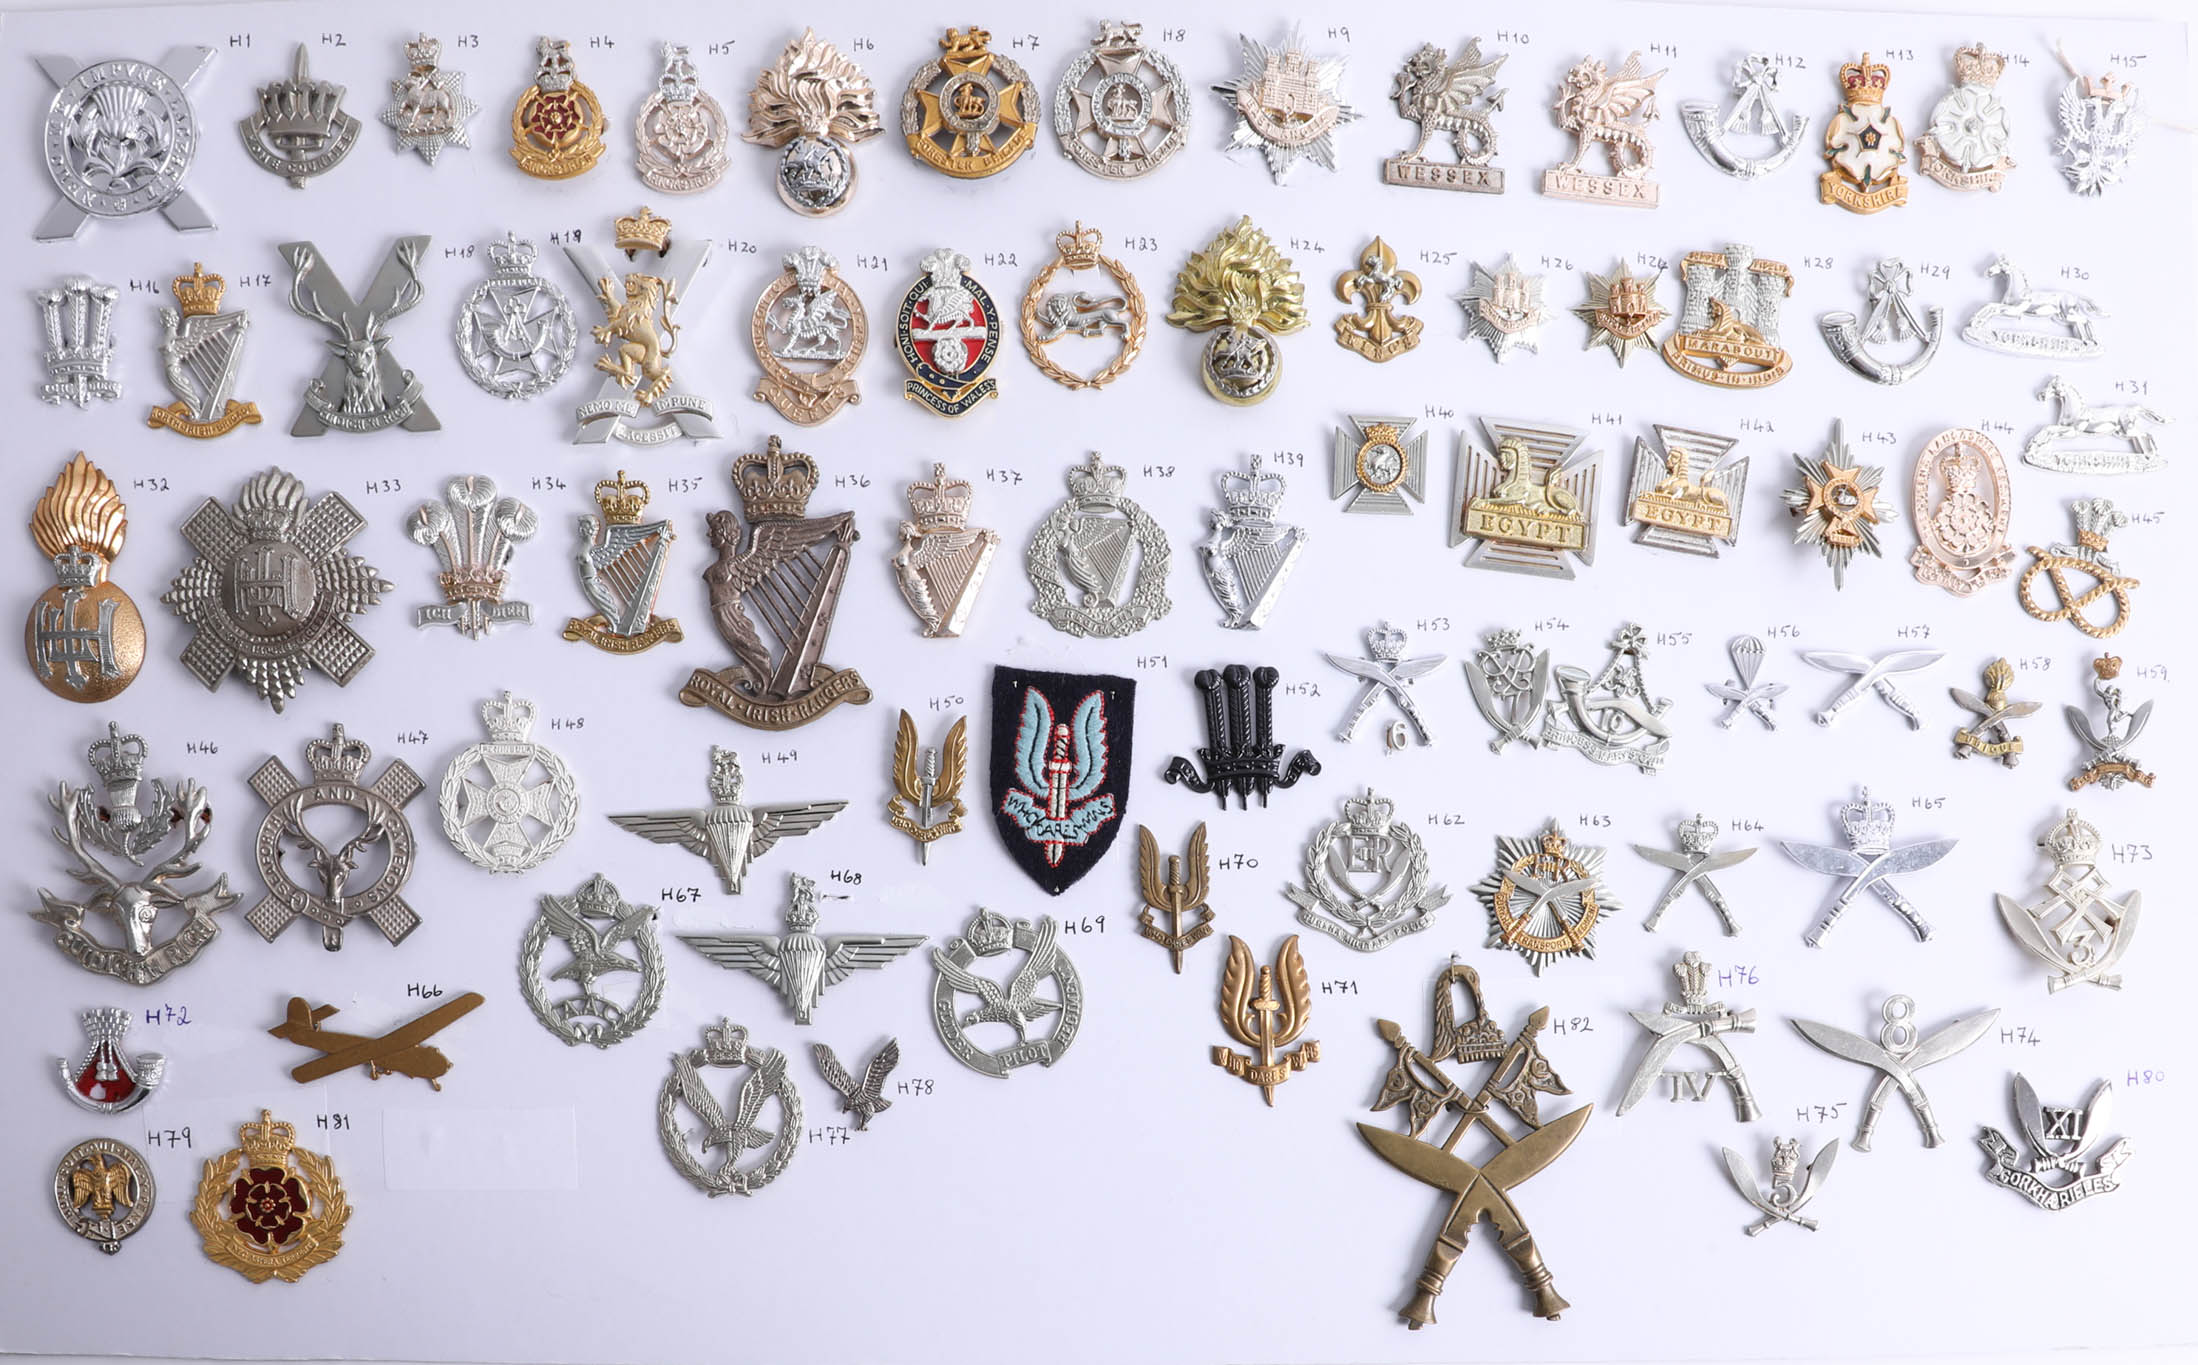 Lot 008 - A collection of approx. 80 military cap badges including SAS, Glider Pilot Regiment and many